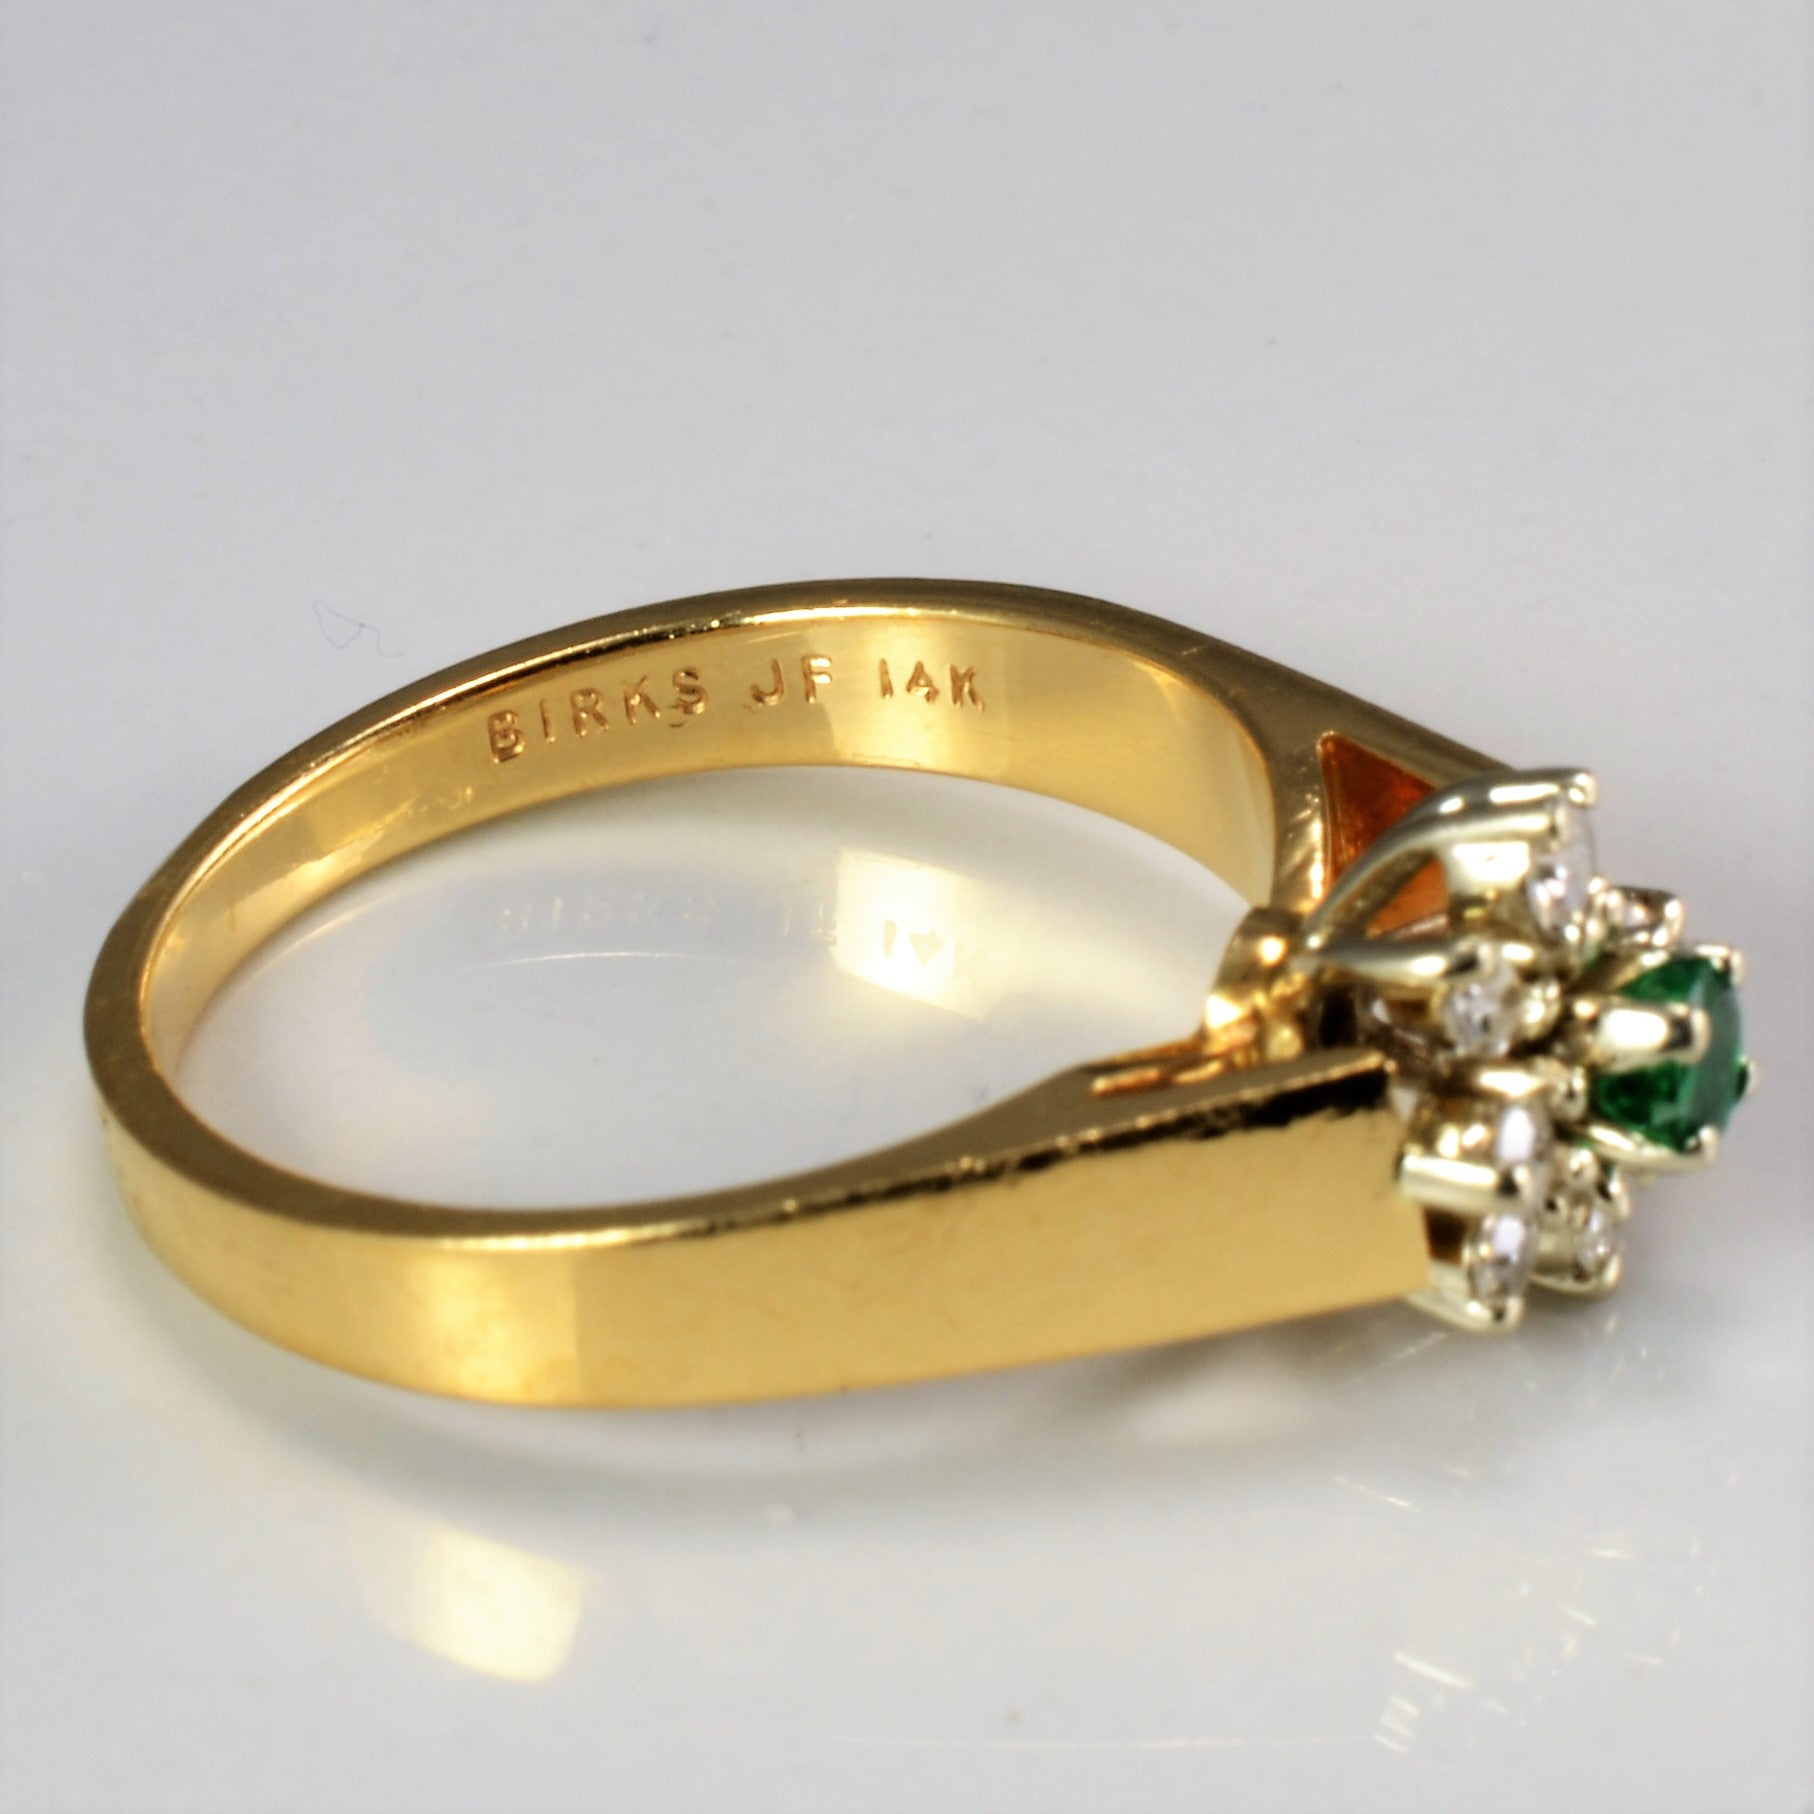 BIRKS Emerald & Diamond Ladies Cocktail Ring | 0.12 ctw, SZ 6.25 |